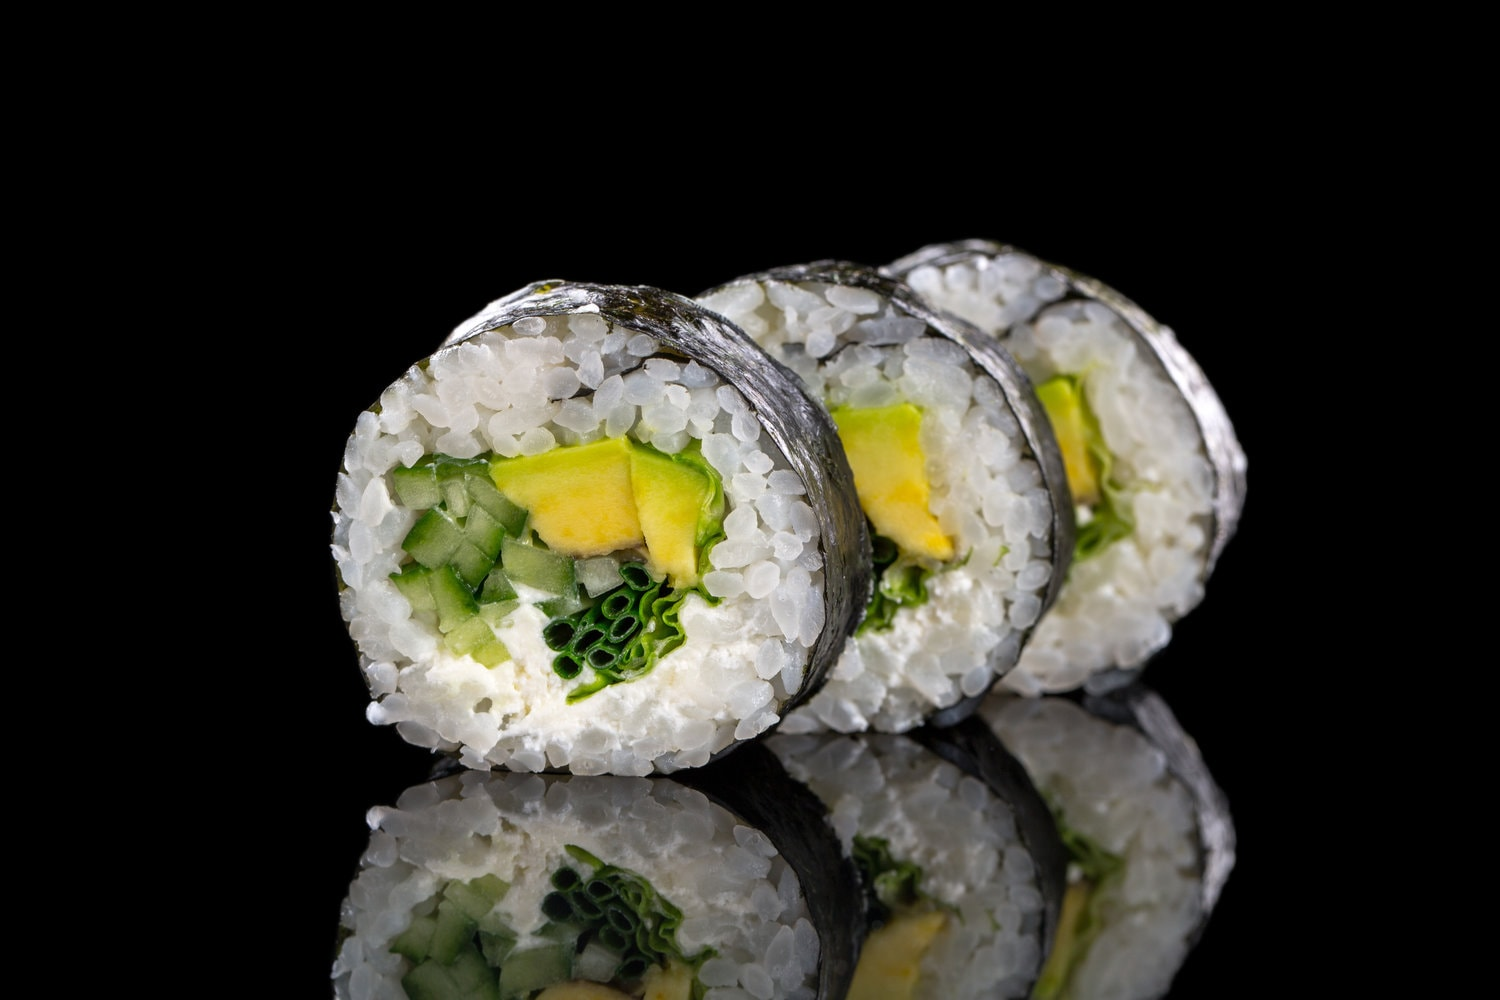 Sushi On The Black Background